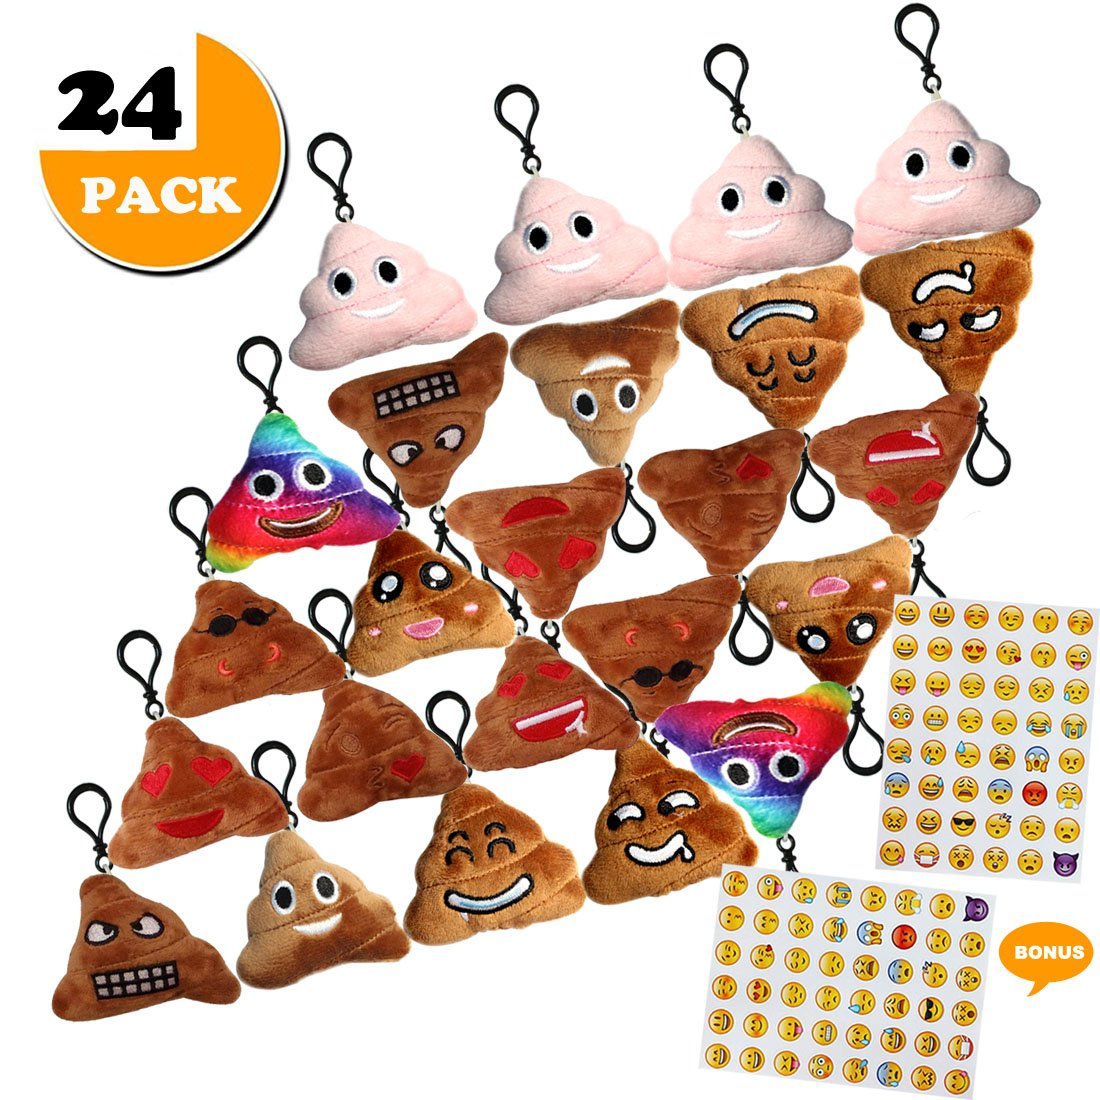 Poop Emoji Funny Prizes Toy Plush Keychain Kids Bday Supplies Favor Party Decoration, 24 Pack Emoji-pop Emoticon Mini Pillow Backpack Clips, Car Key Chains Pendant Goody Bag Stuffed, Bonus Sticker